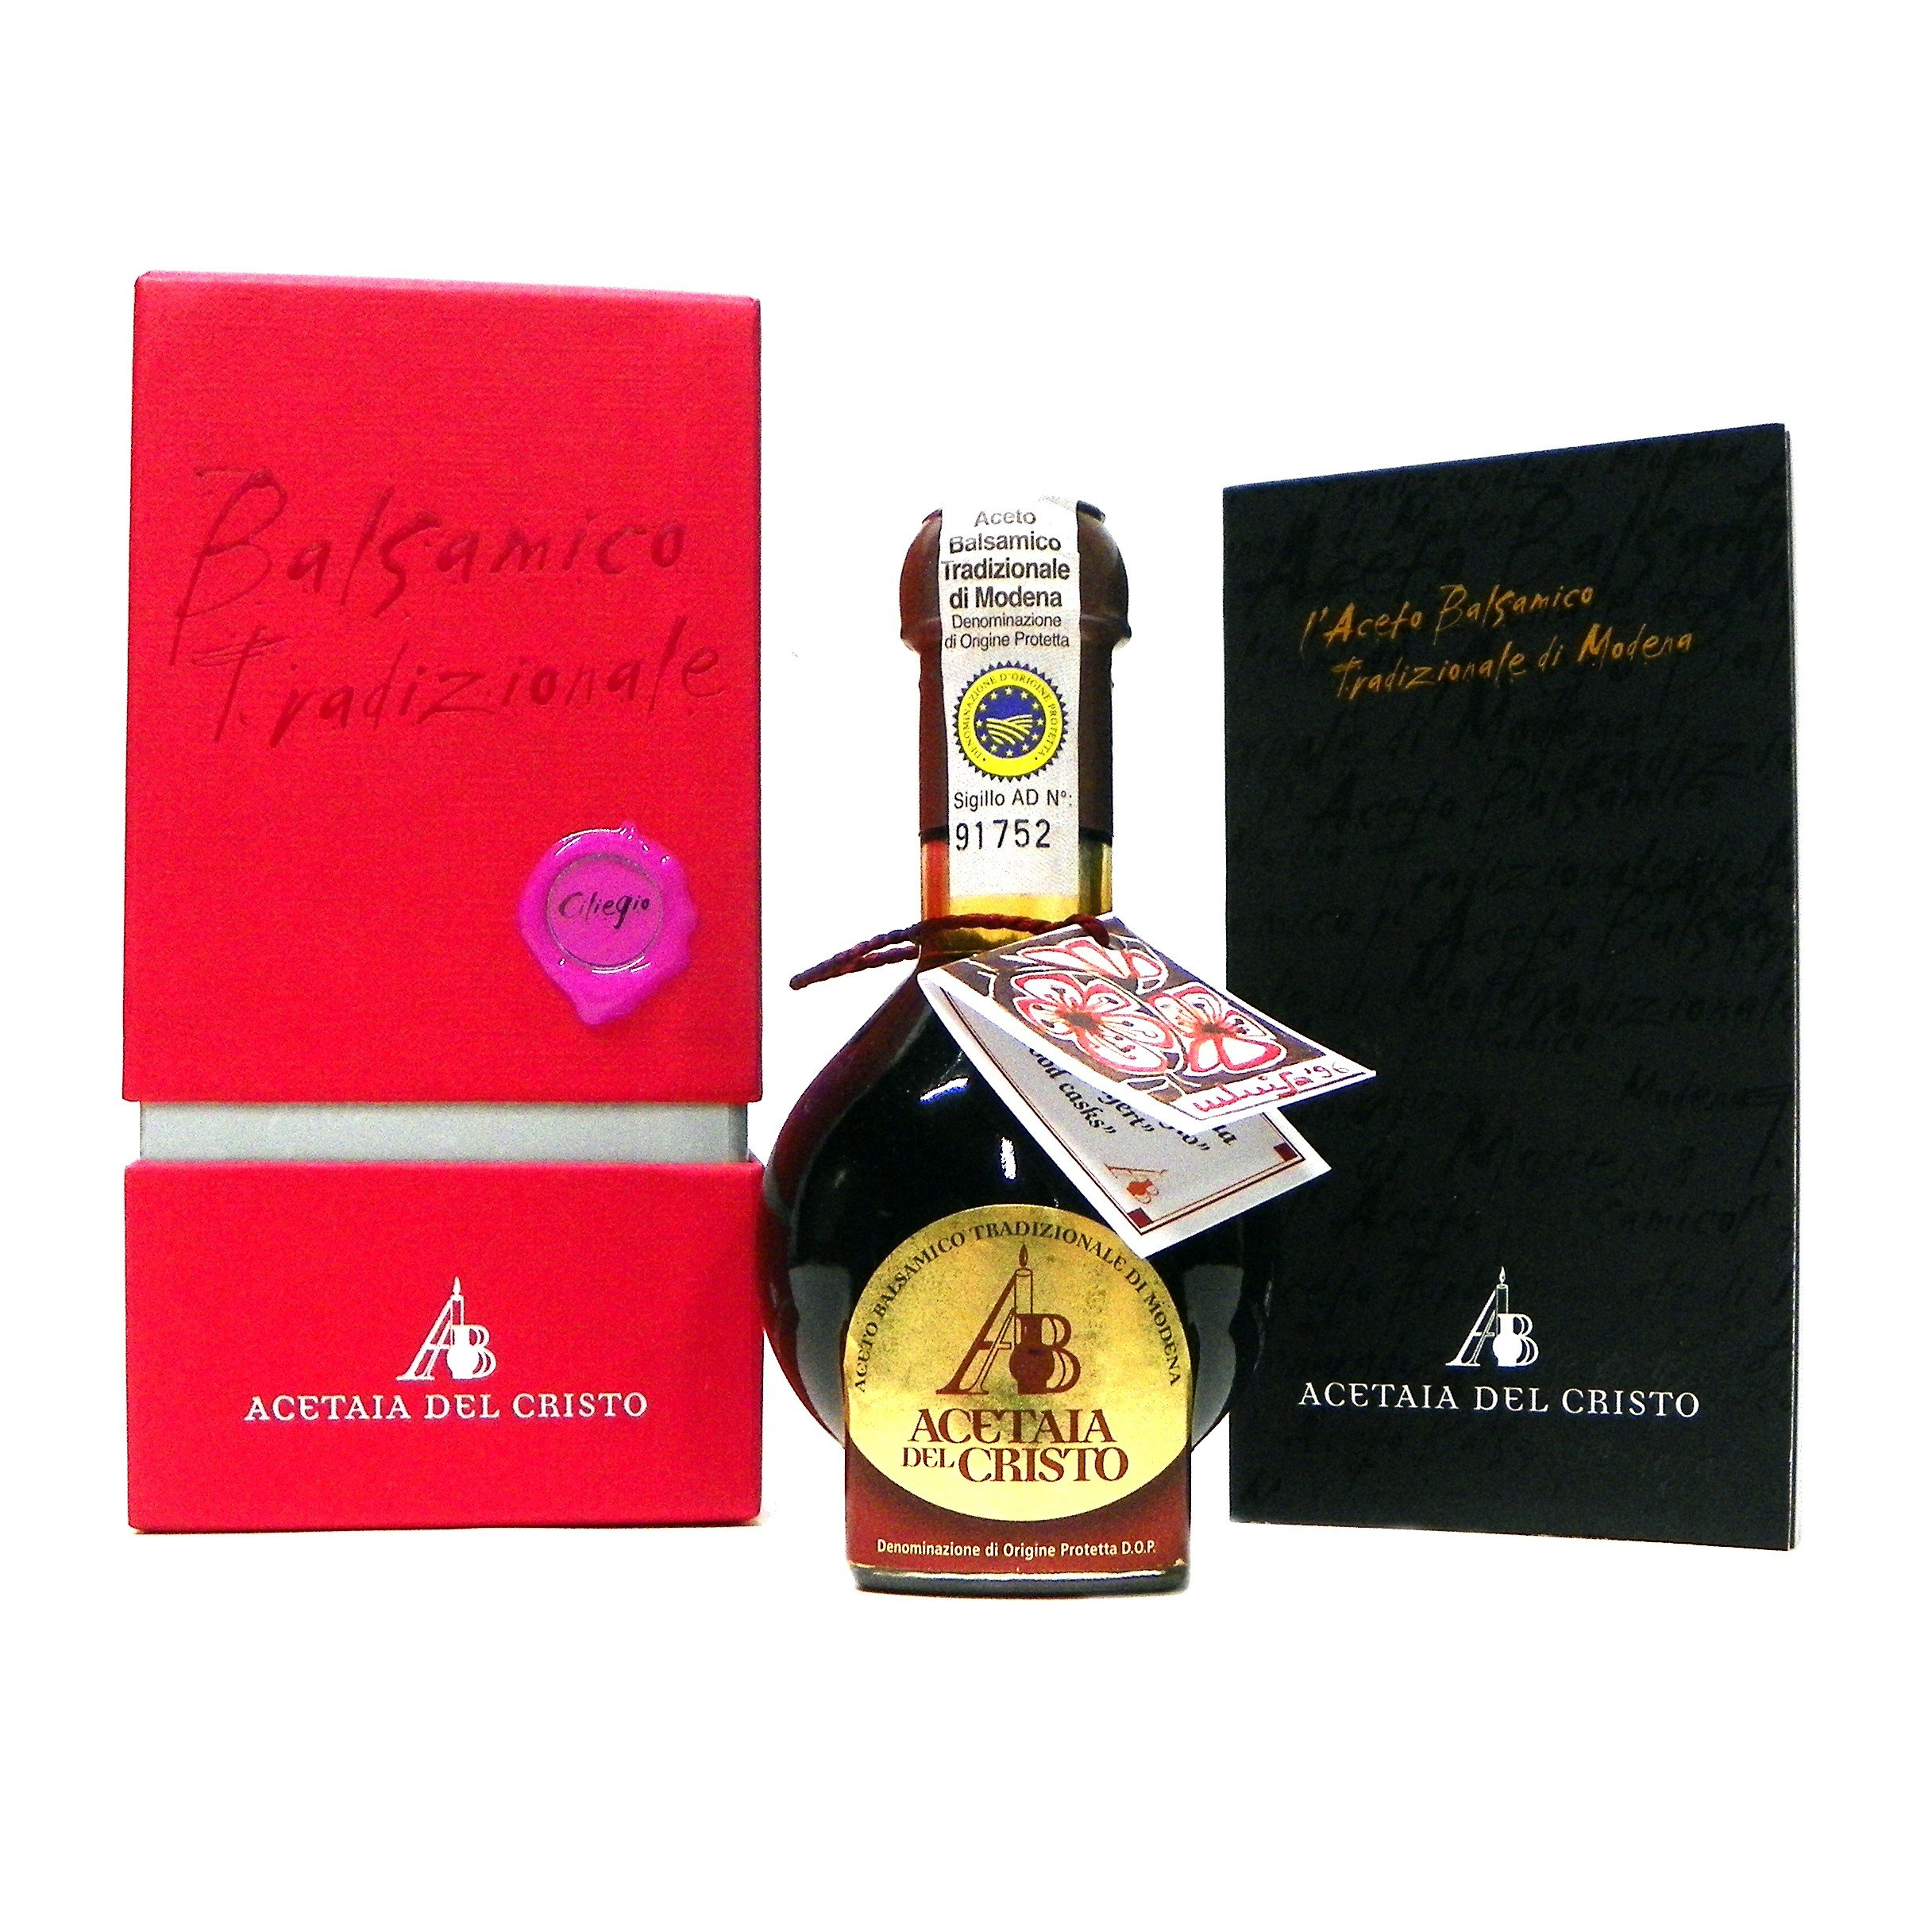 Acetaia Del Cristo Traditional Balsamic Vinegar of Modena Aged in Cherry Wood Barrels DOP 100 ml 12 years or more